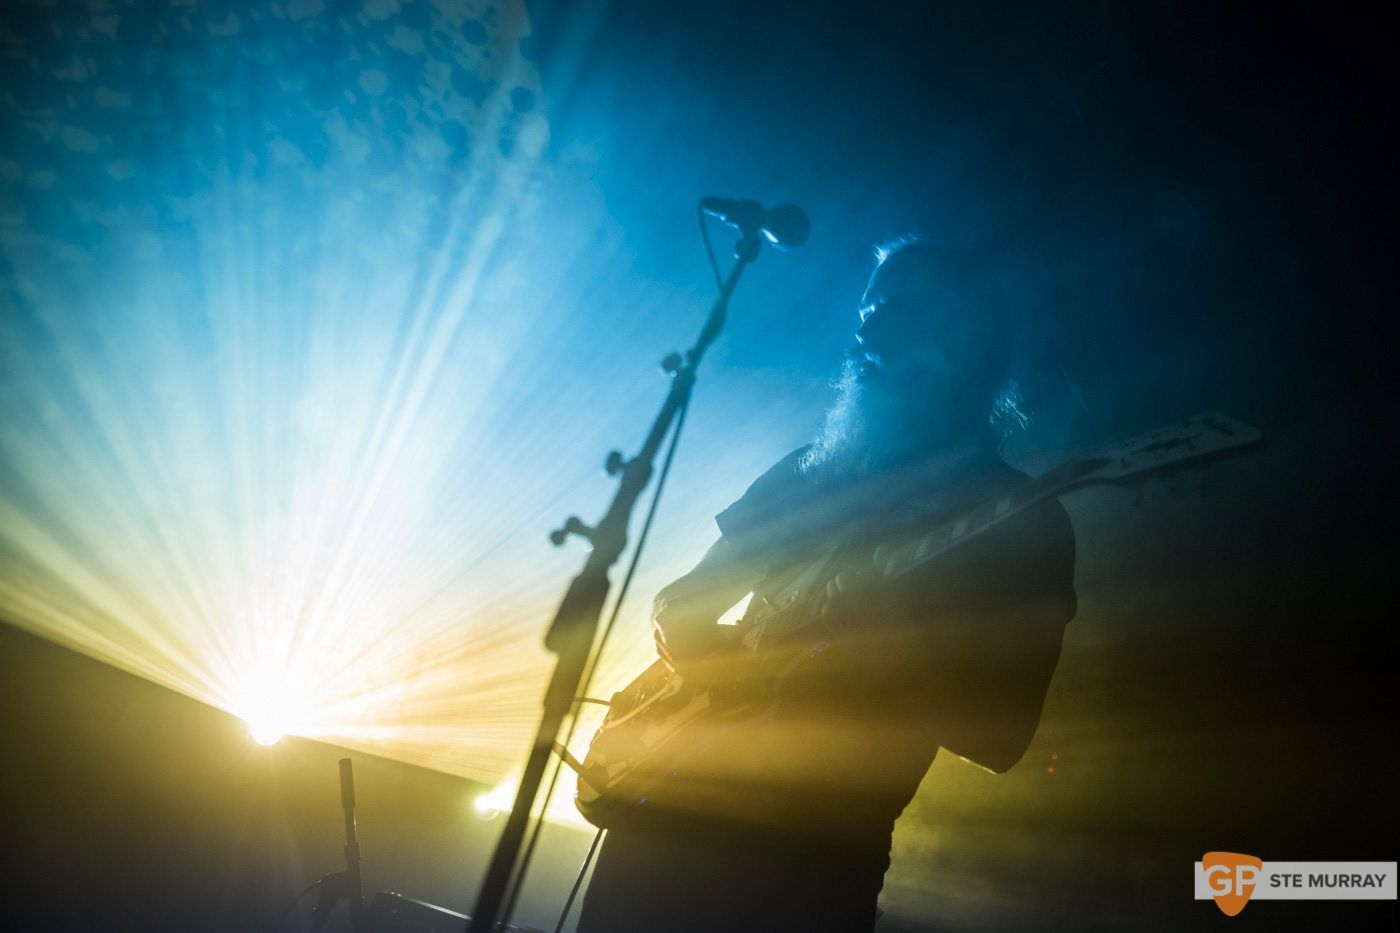 Moon Duo AT Button Factory BY Ste Murray_19